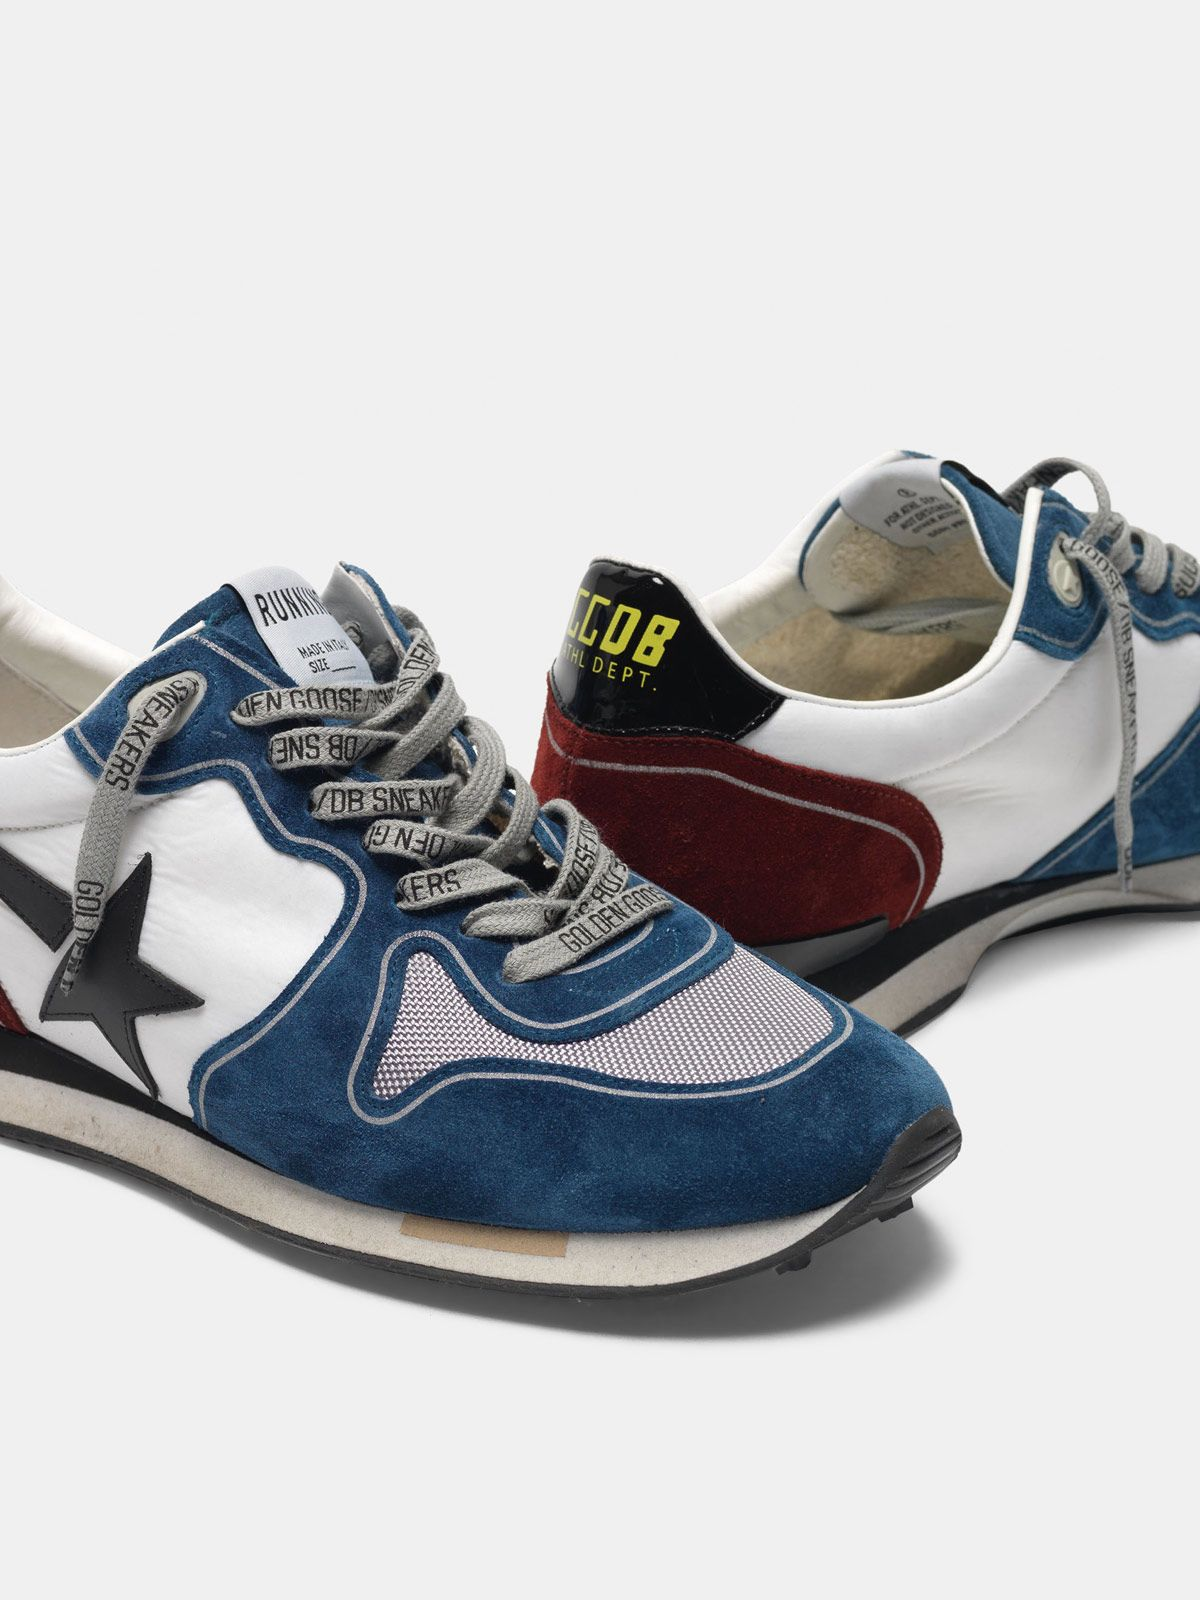 Golden Goose - Running sneakers in petrol and burgundy with black star in